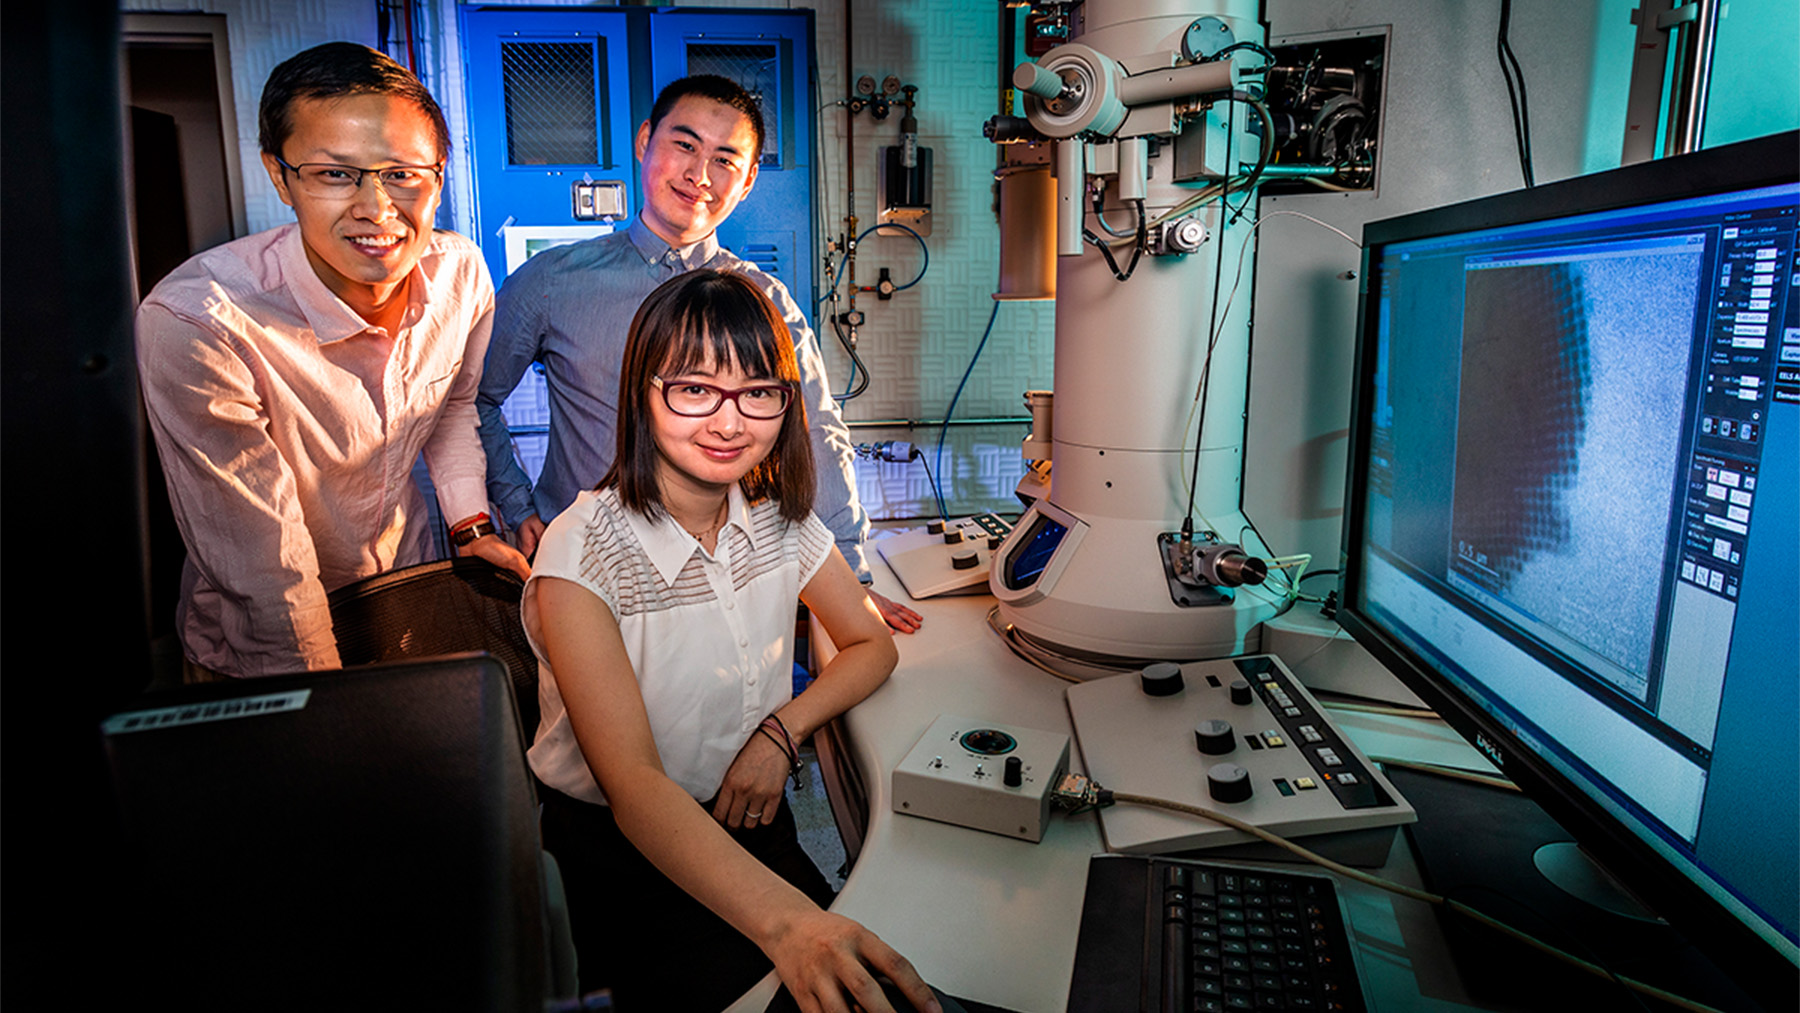 Professor Qian Chen, seated, and graduate students Binbin Luo, left, and Zihao Ou. Photo by Fred Zwicky